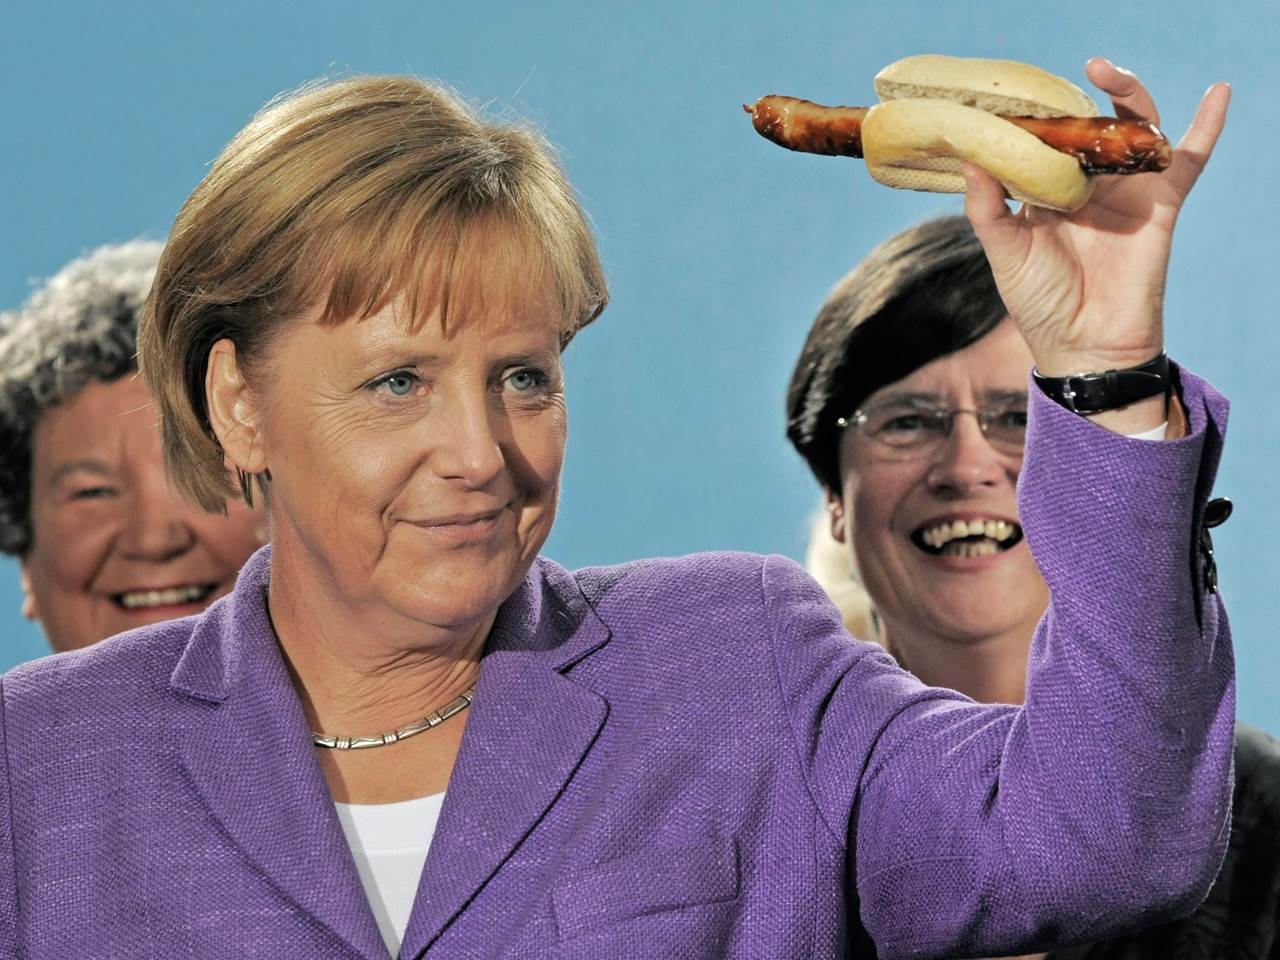 10 Hilarious German Sausage Sayings To Try On Your Friends